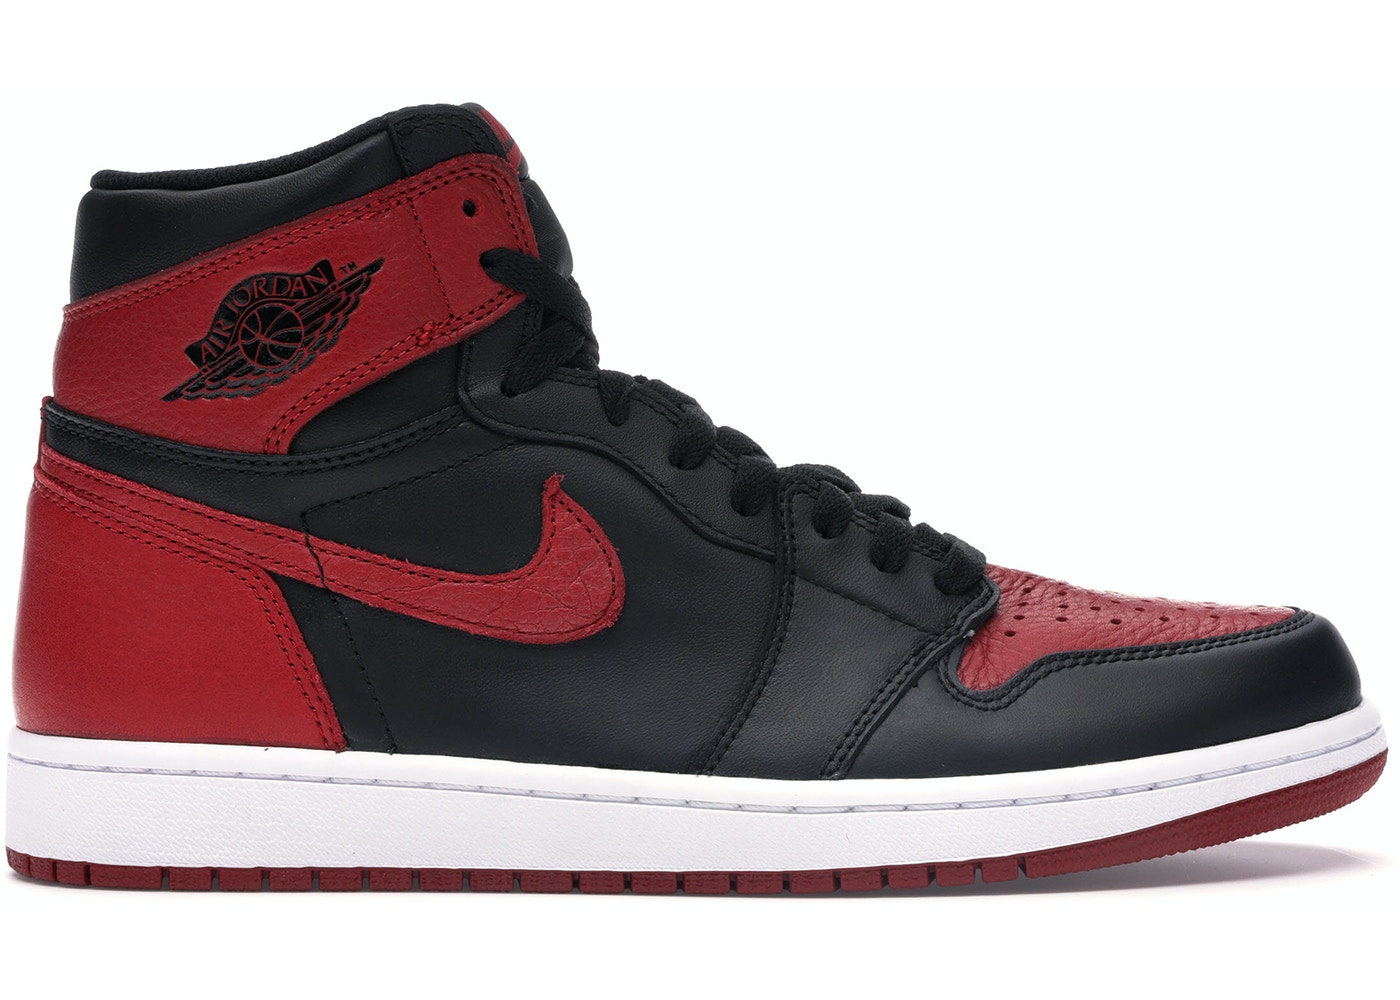 new product 3faf2 31c38 Jordan 1 Retro Bred